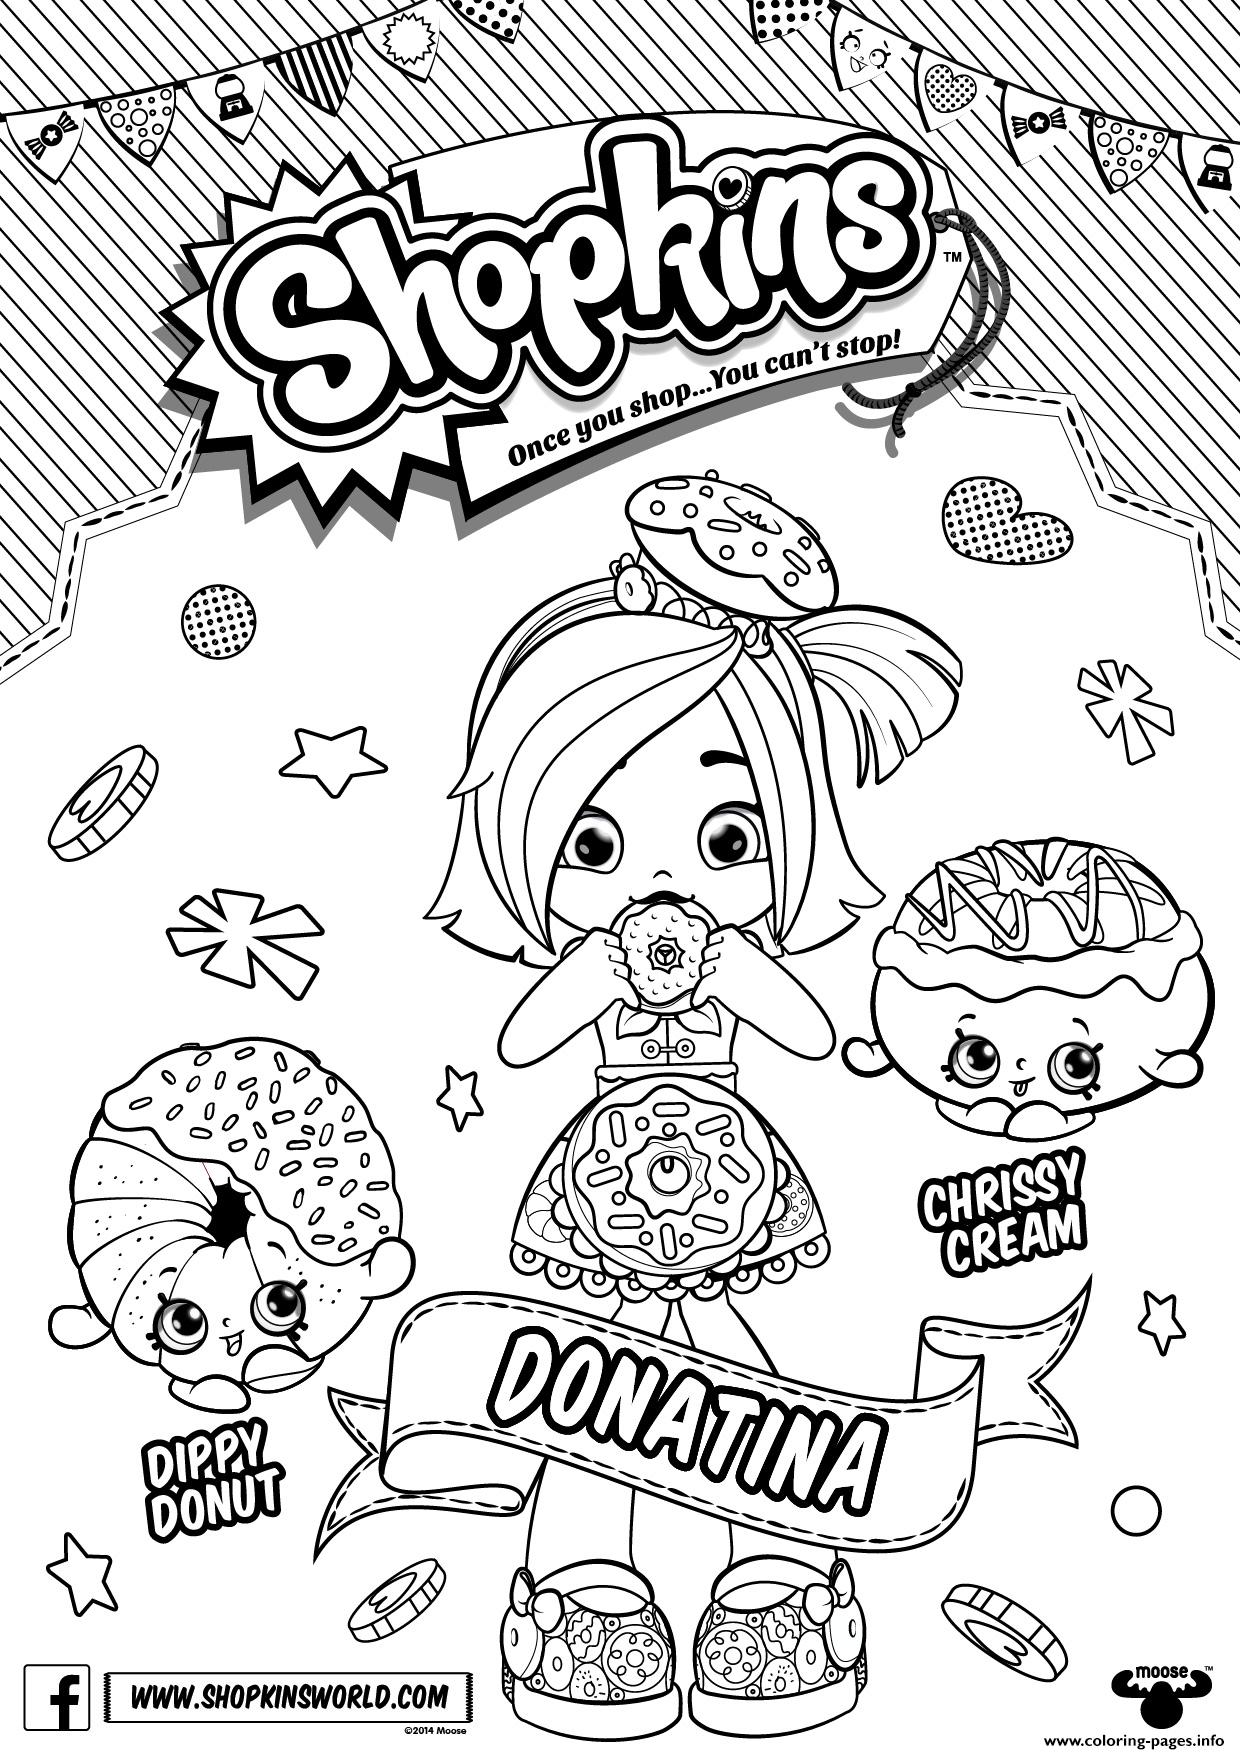 donatina shopkins shoppies coloring pages printable - Hopkins Coloring Pages Print